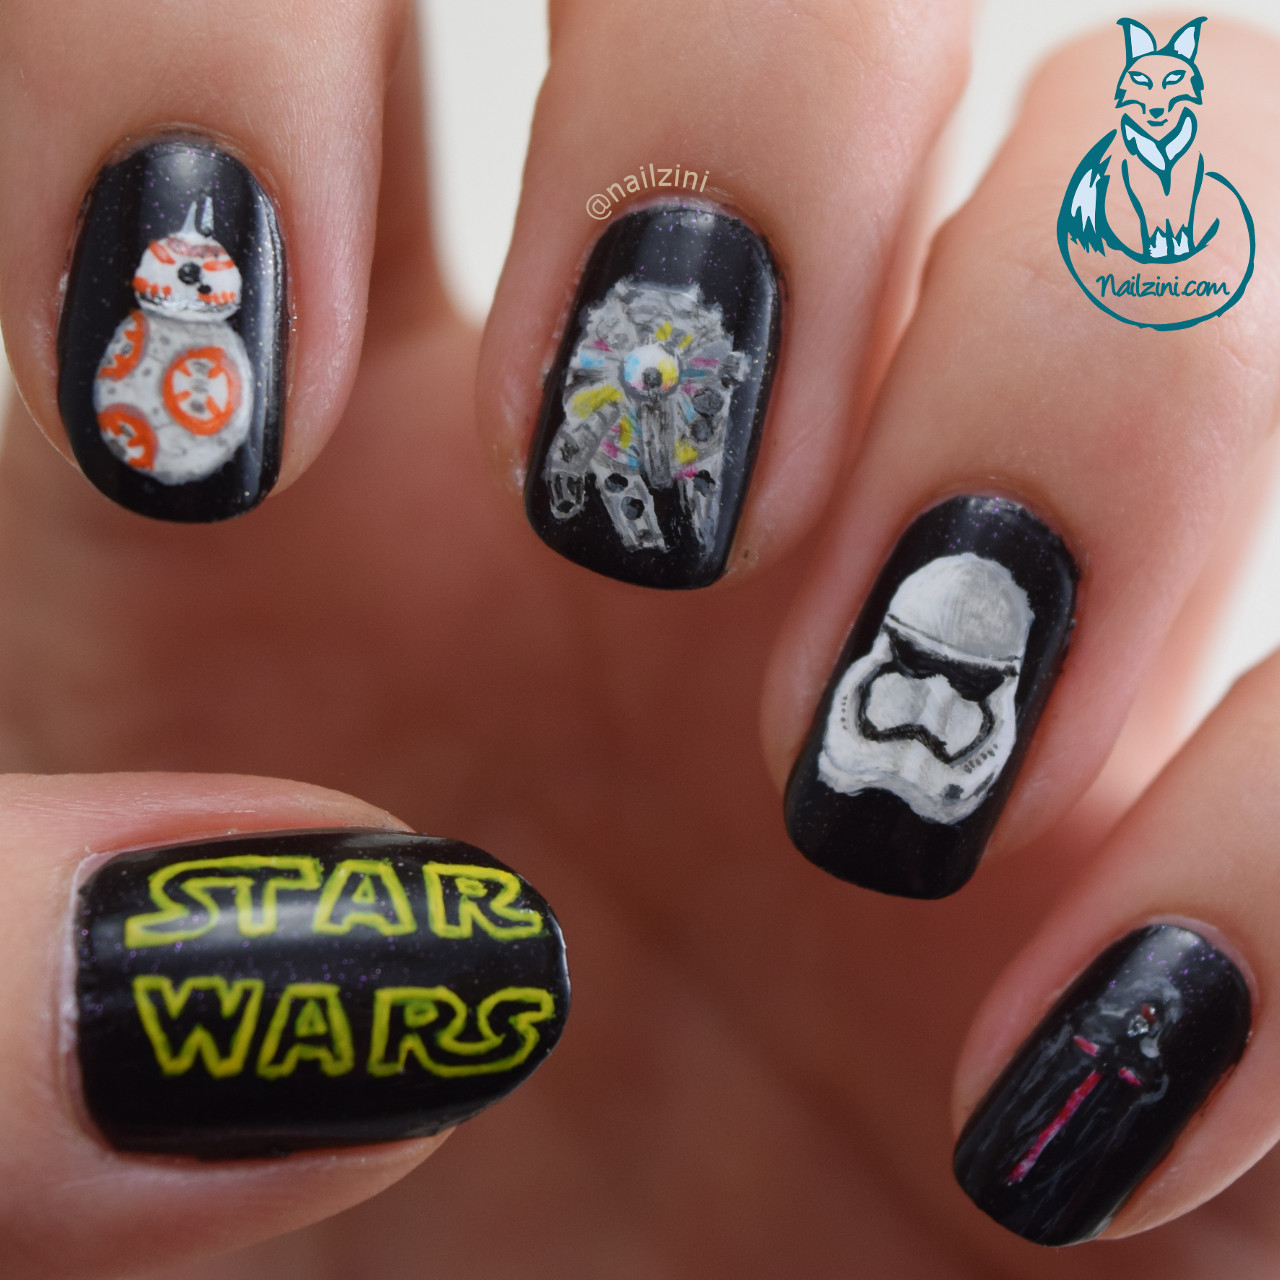 Star Wars: The Force Awakens nail art